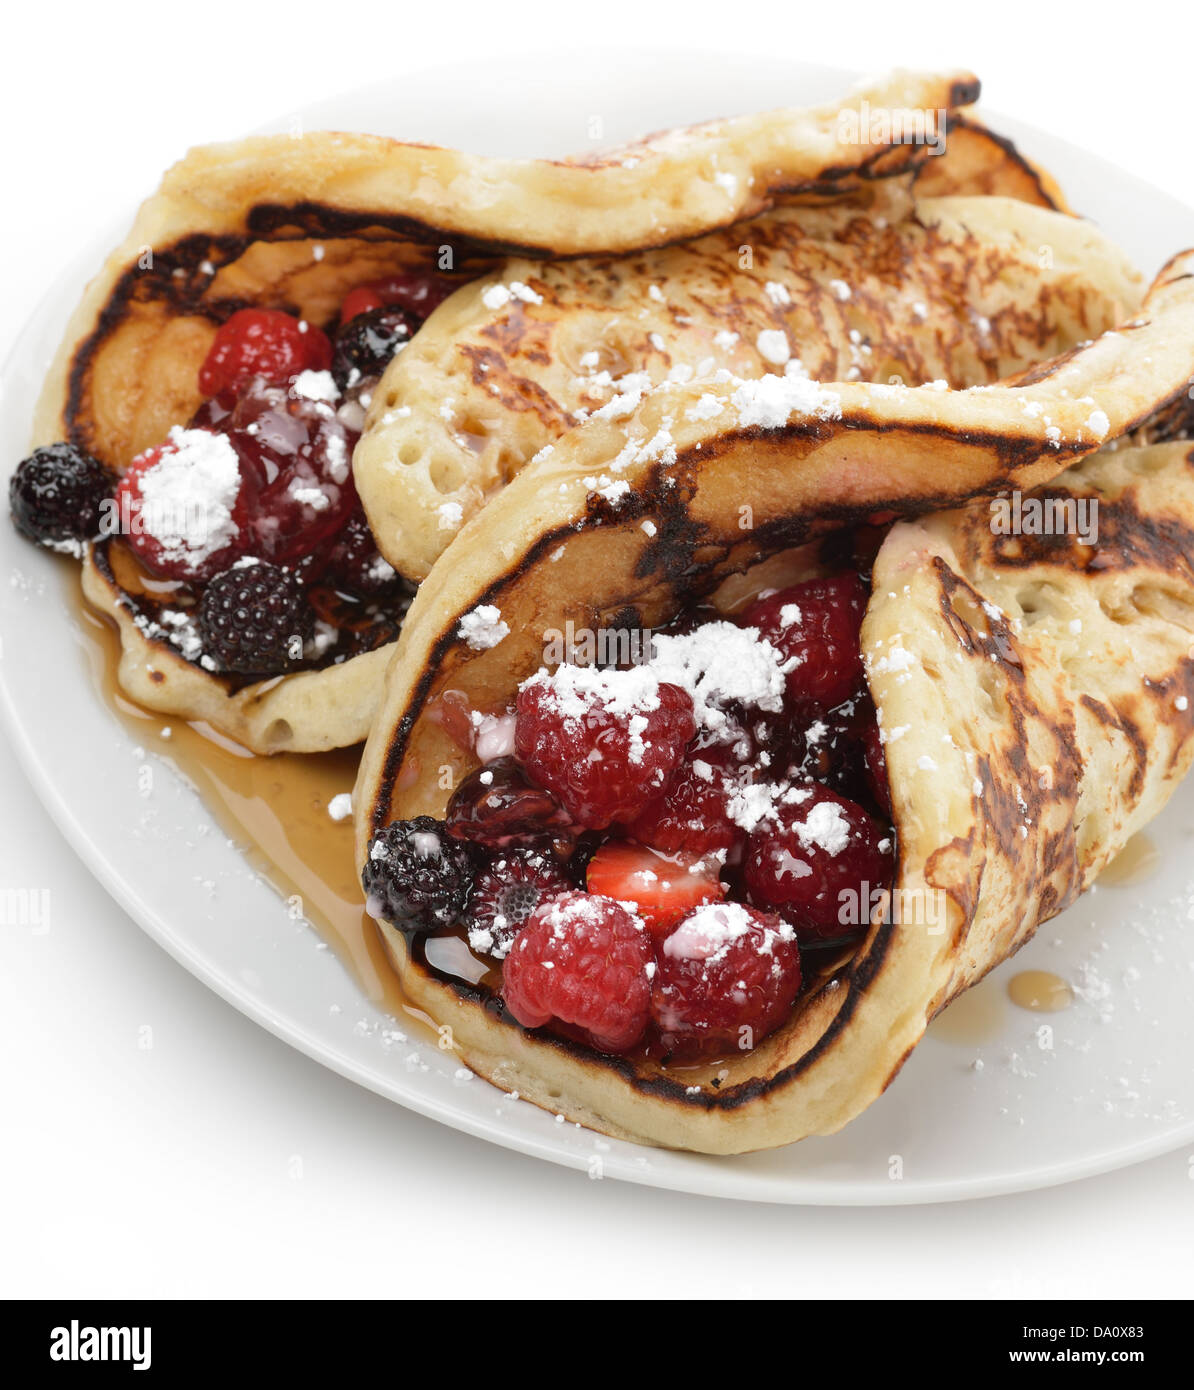 Pancakes With Berries And Maple Syrup ,Close Up - Stock Image